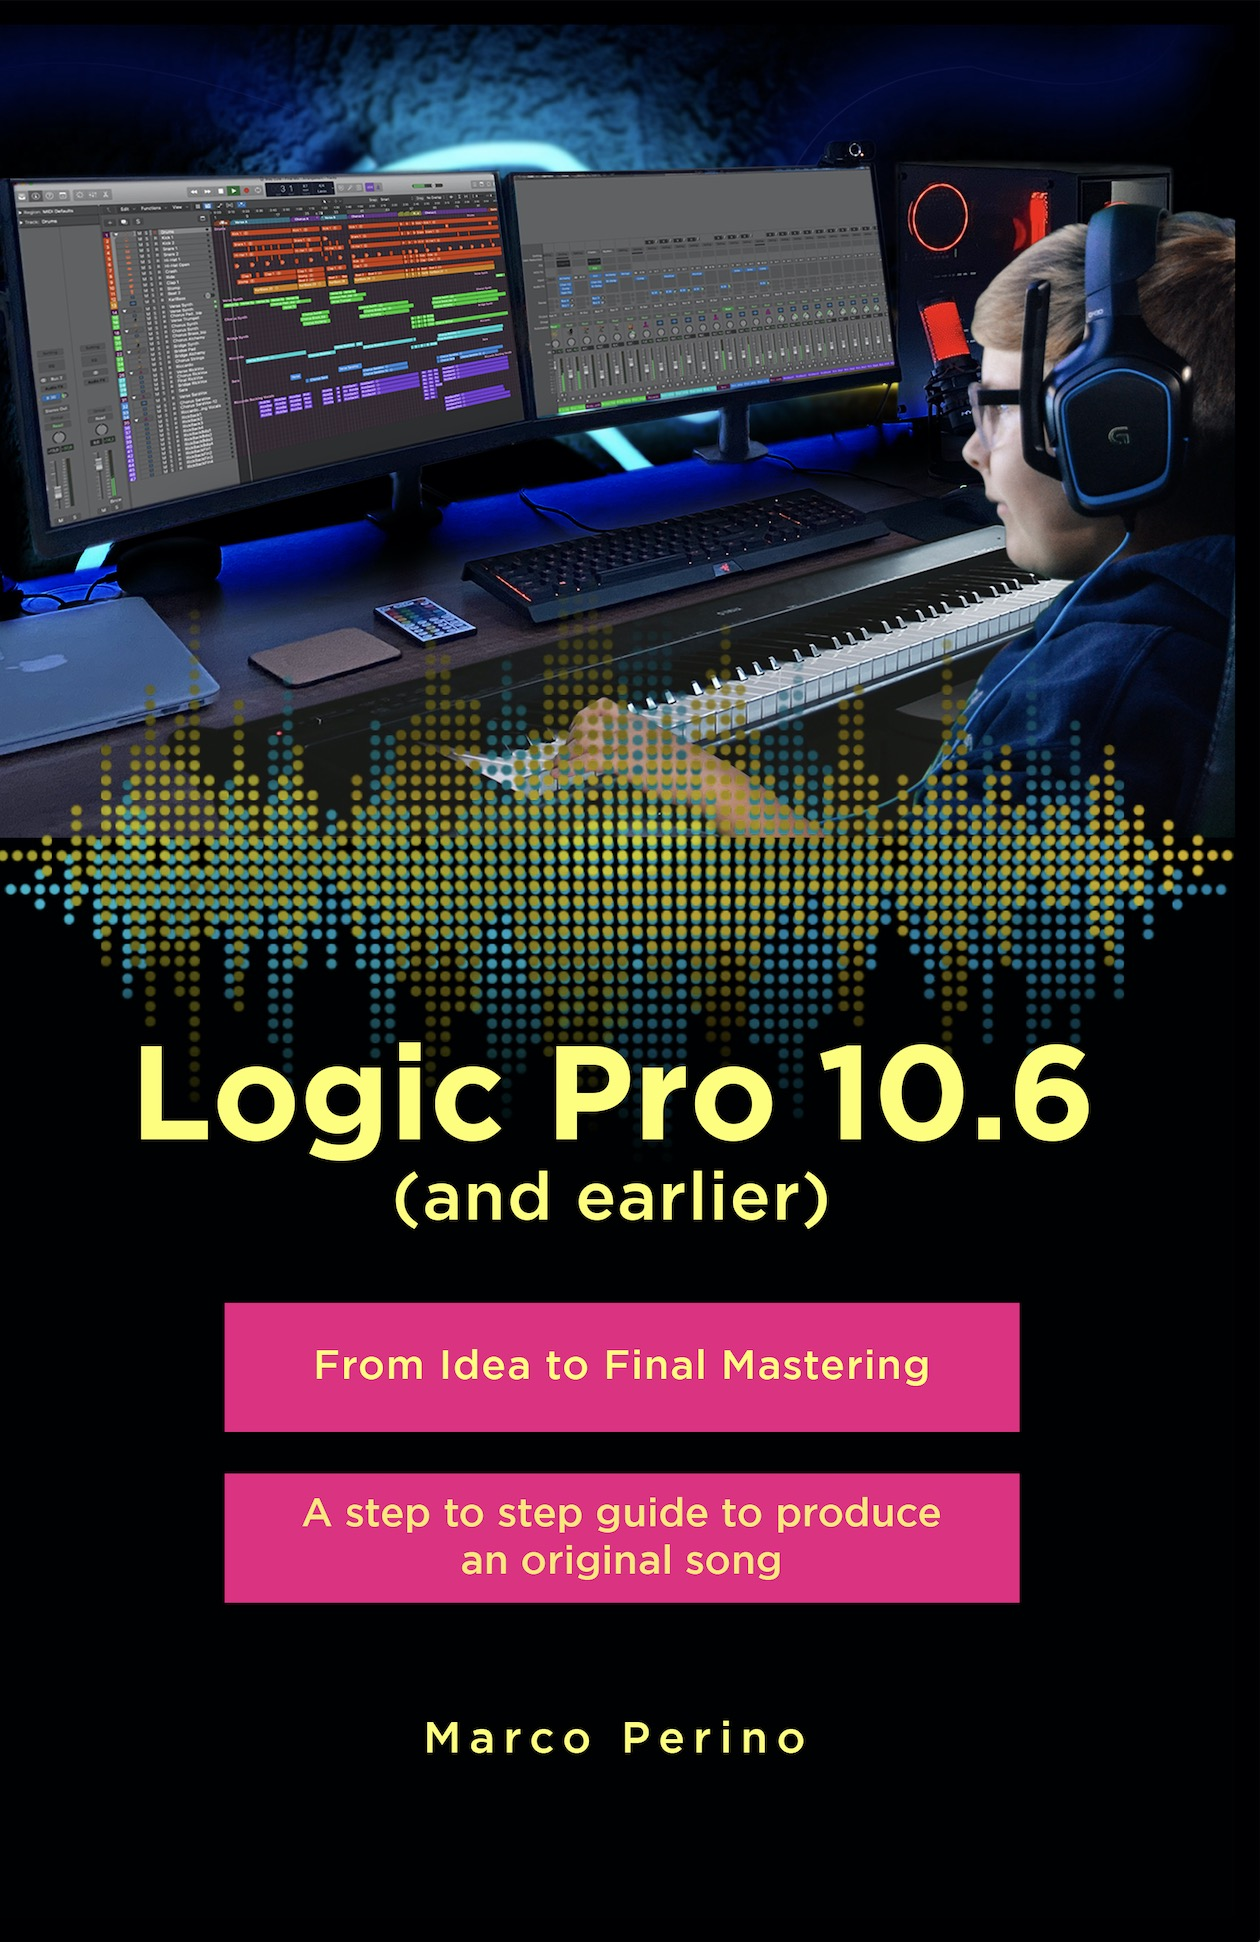 Logic Pro 10.6 and earlier from idea to final mastering